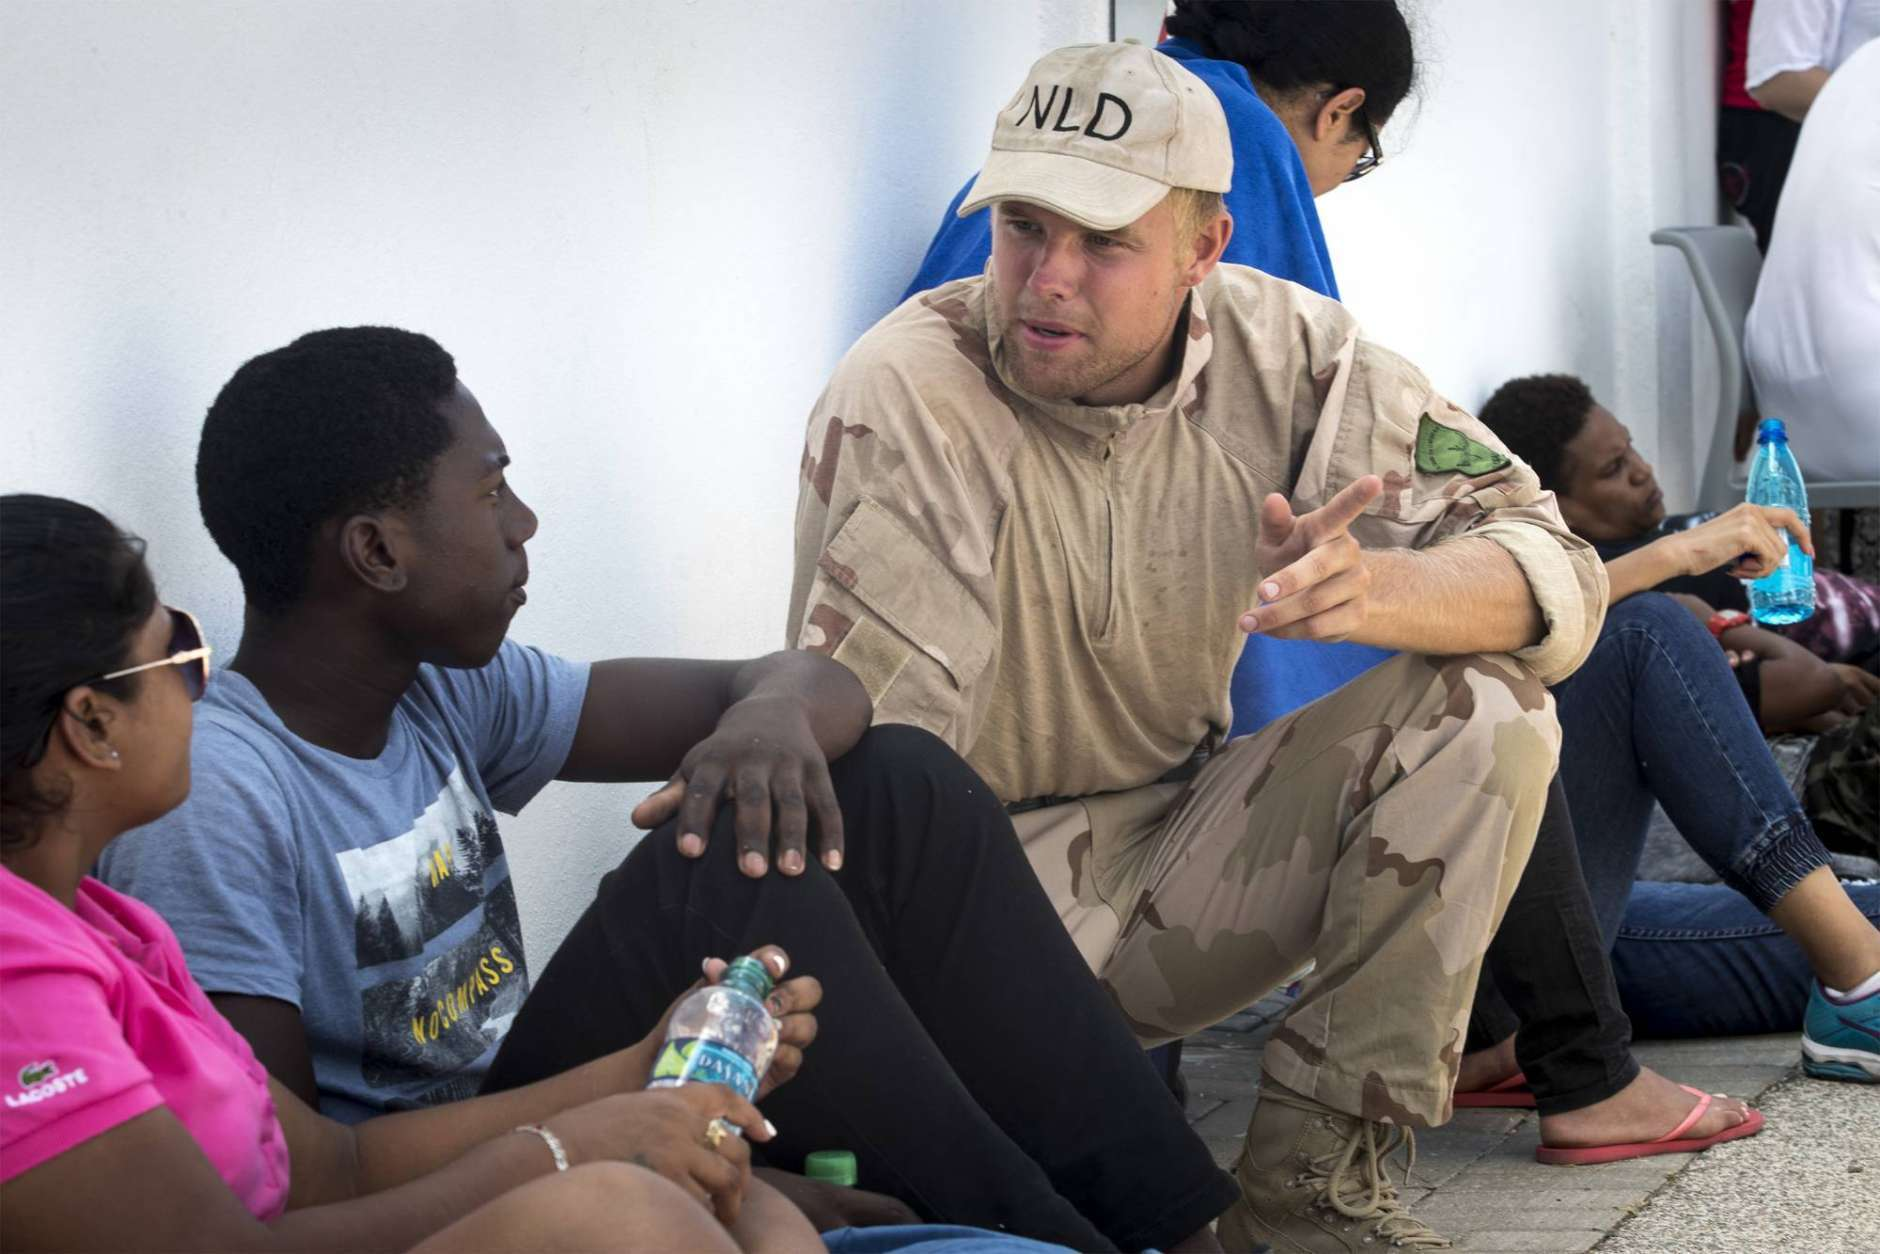 This photo provided by the Dutch Defense Ministry shows a Dutch soldier talking to residents after the passing of Hurricane Irma, in Dutch Caribbean St. Maarten, on Monday Sept. 11, 2017. Dutch King Willem-Alexander said the scenes of devastation he witnessed on the Caribbean island of St. Martin in the aftermath of Hurricane Irma are the worst he has ever seen. (Gerben Van Es/Dutch Defense Ministry via AP)